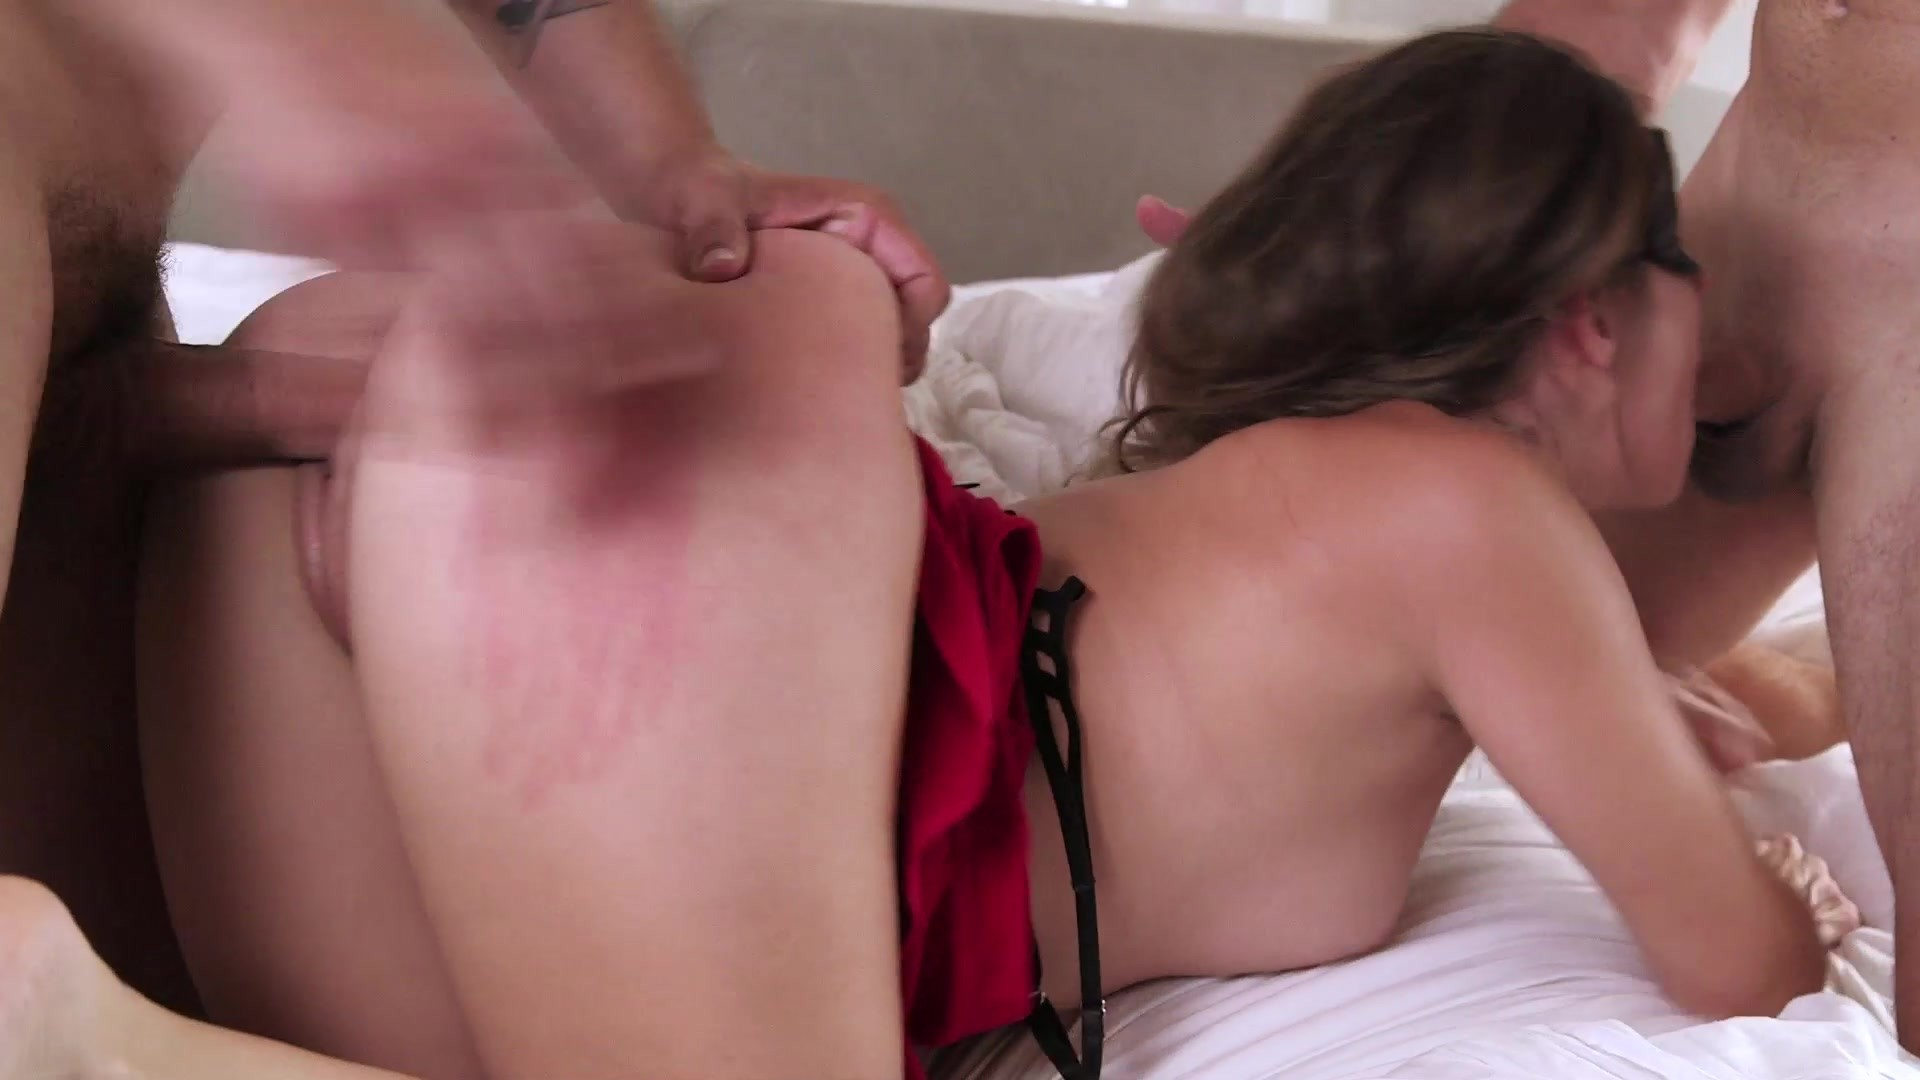 Scene with Anthony Rosano and Cassidy Klein - image 17 out of 20